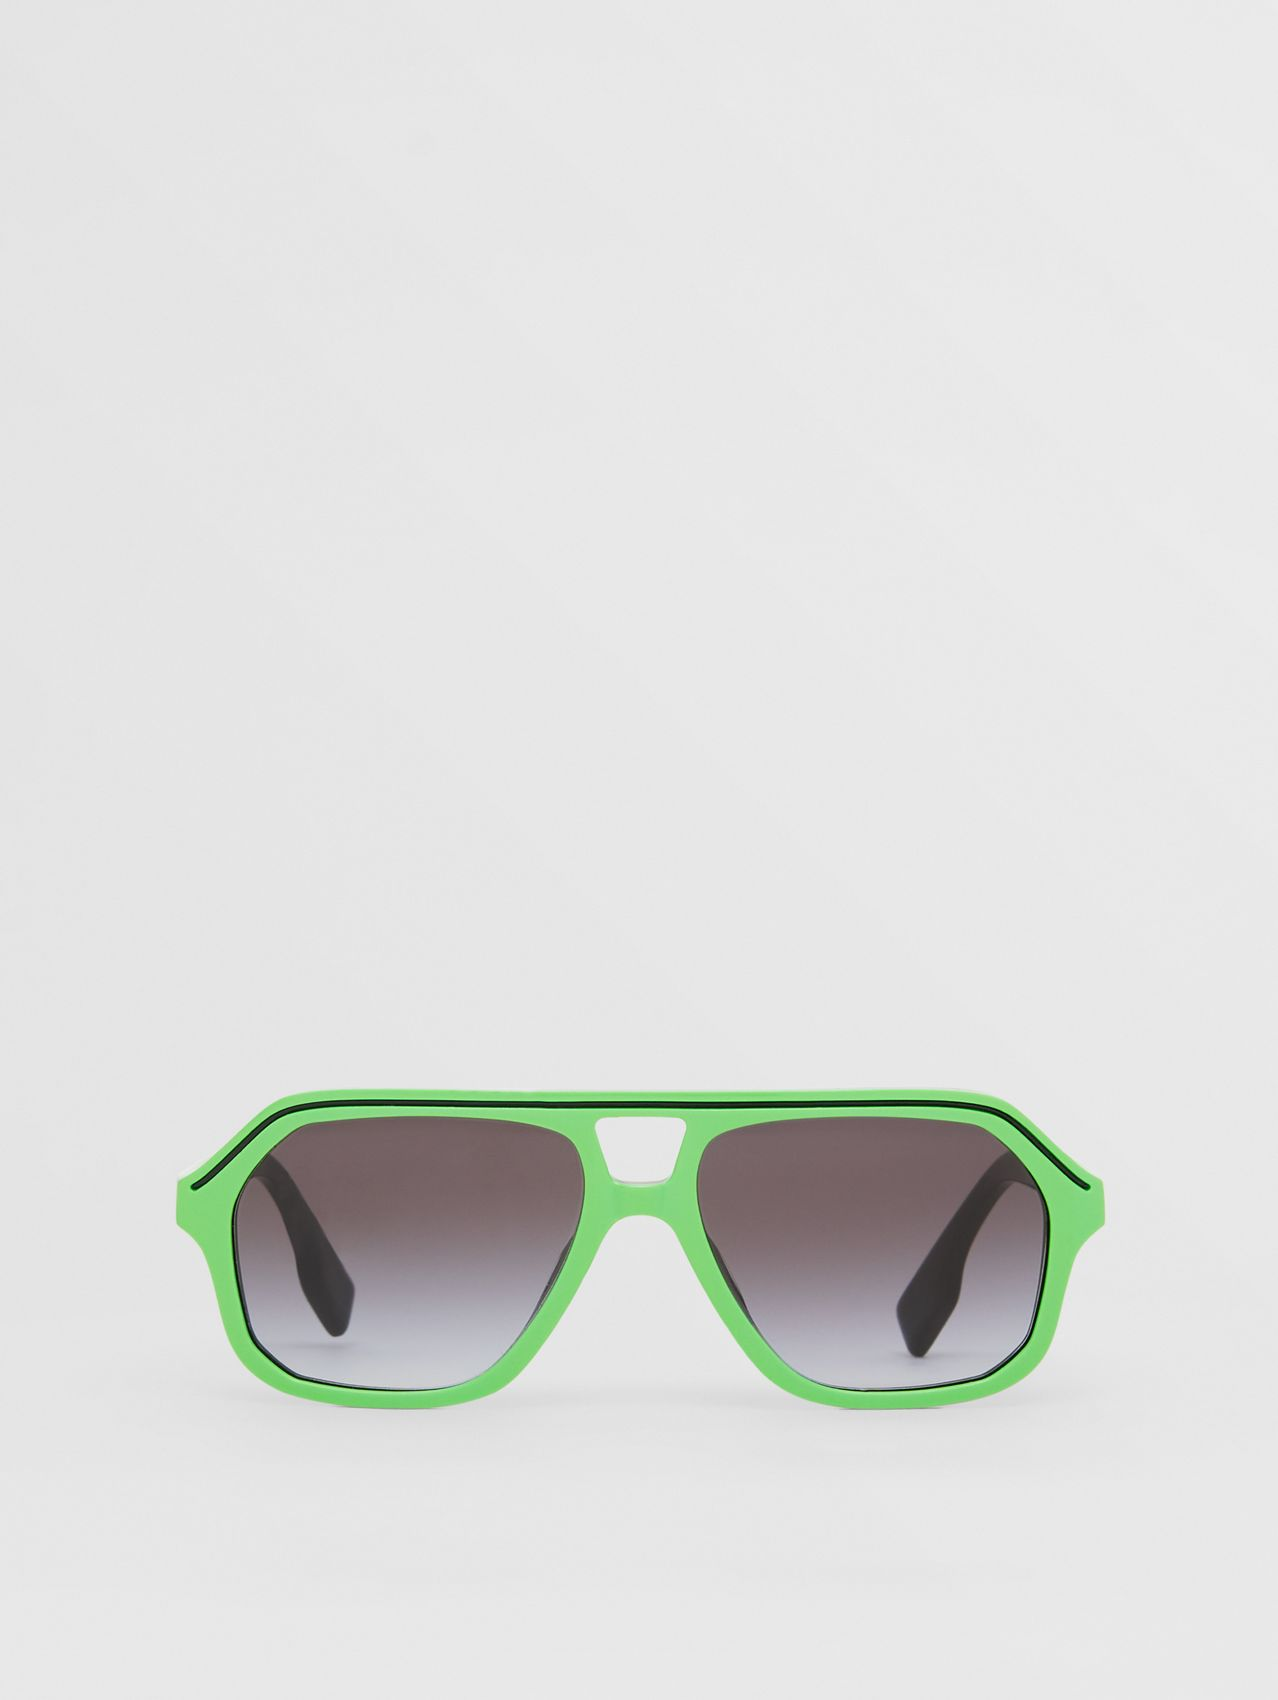 Navigator Sunglasses in Green